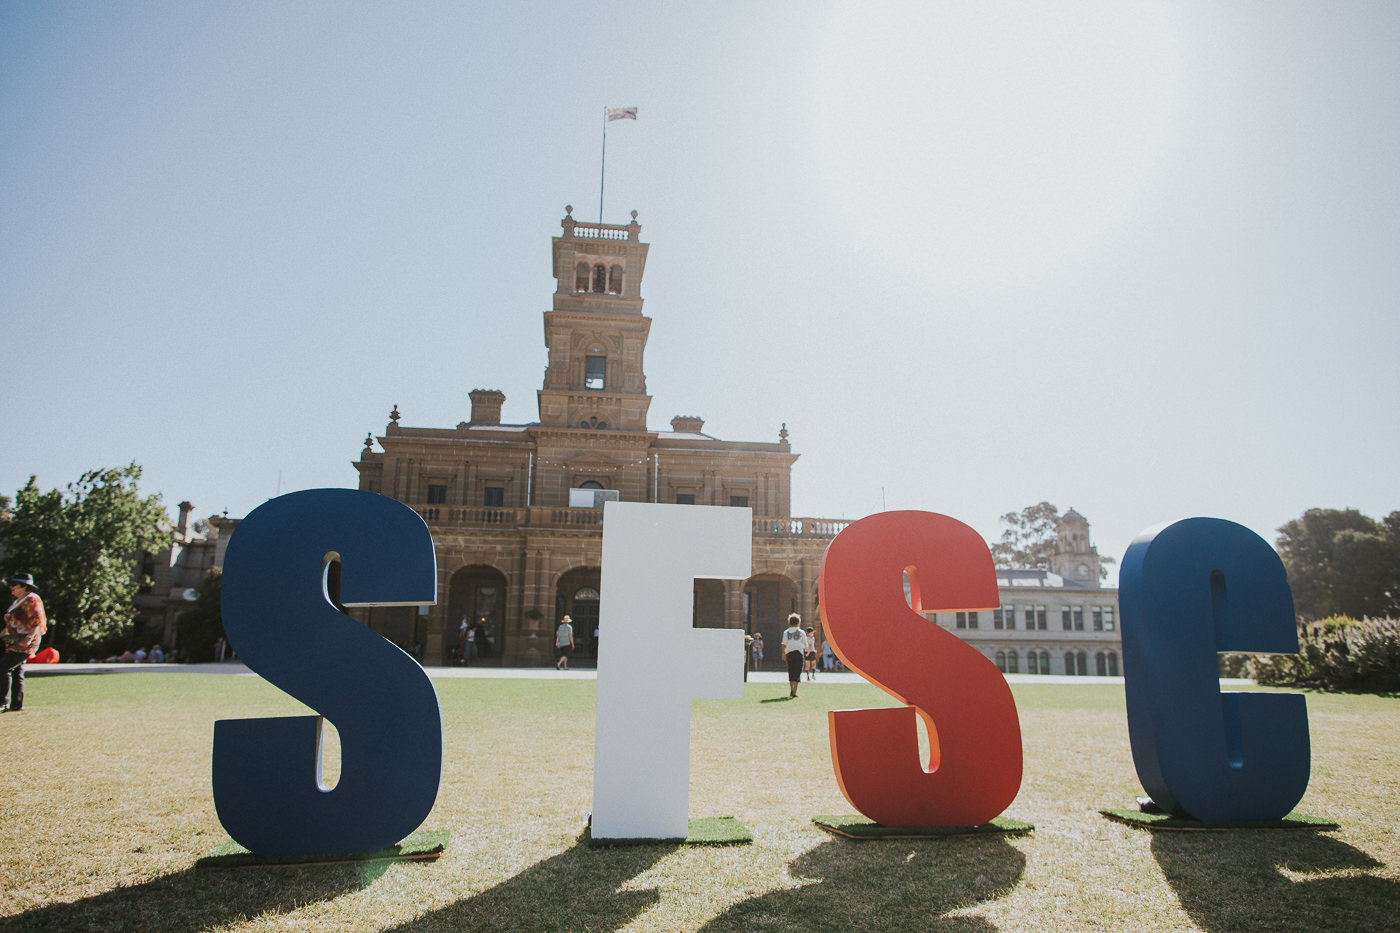 sfsc - so frenchy so chic at werribee mansion